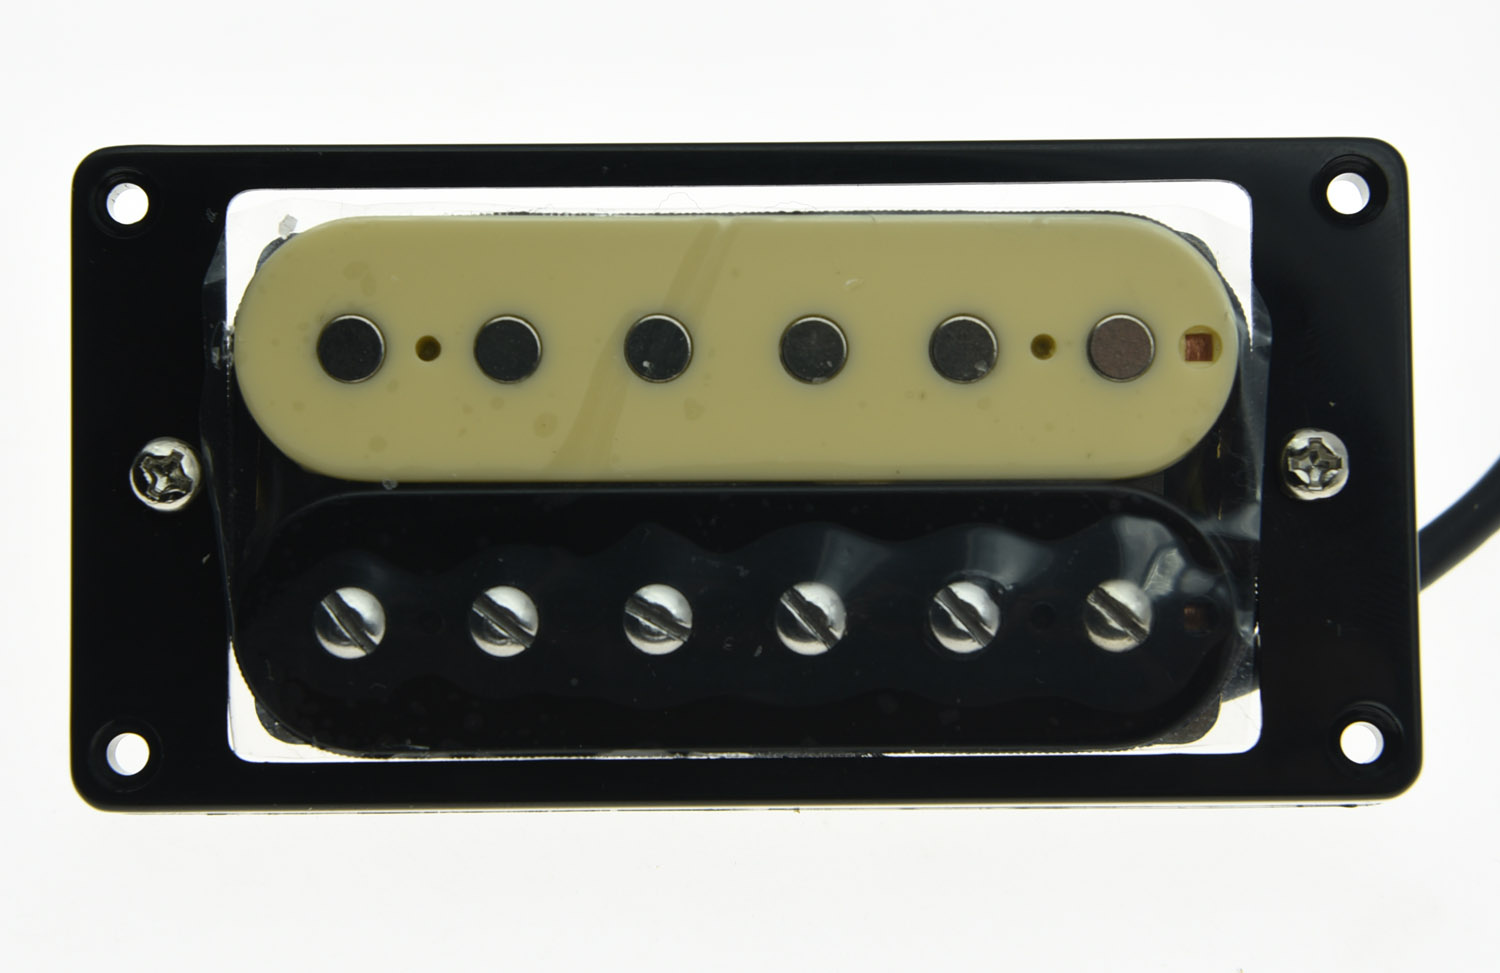 KAISH Alnico V Guitar Humbucker Bridge Pickup 50's Vintage Sound Pickups Zebra Style belcat bass pickup 5 string humbucker double coil pickup guitar parts accessories black